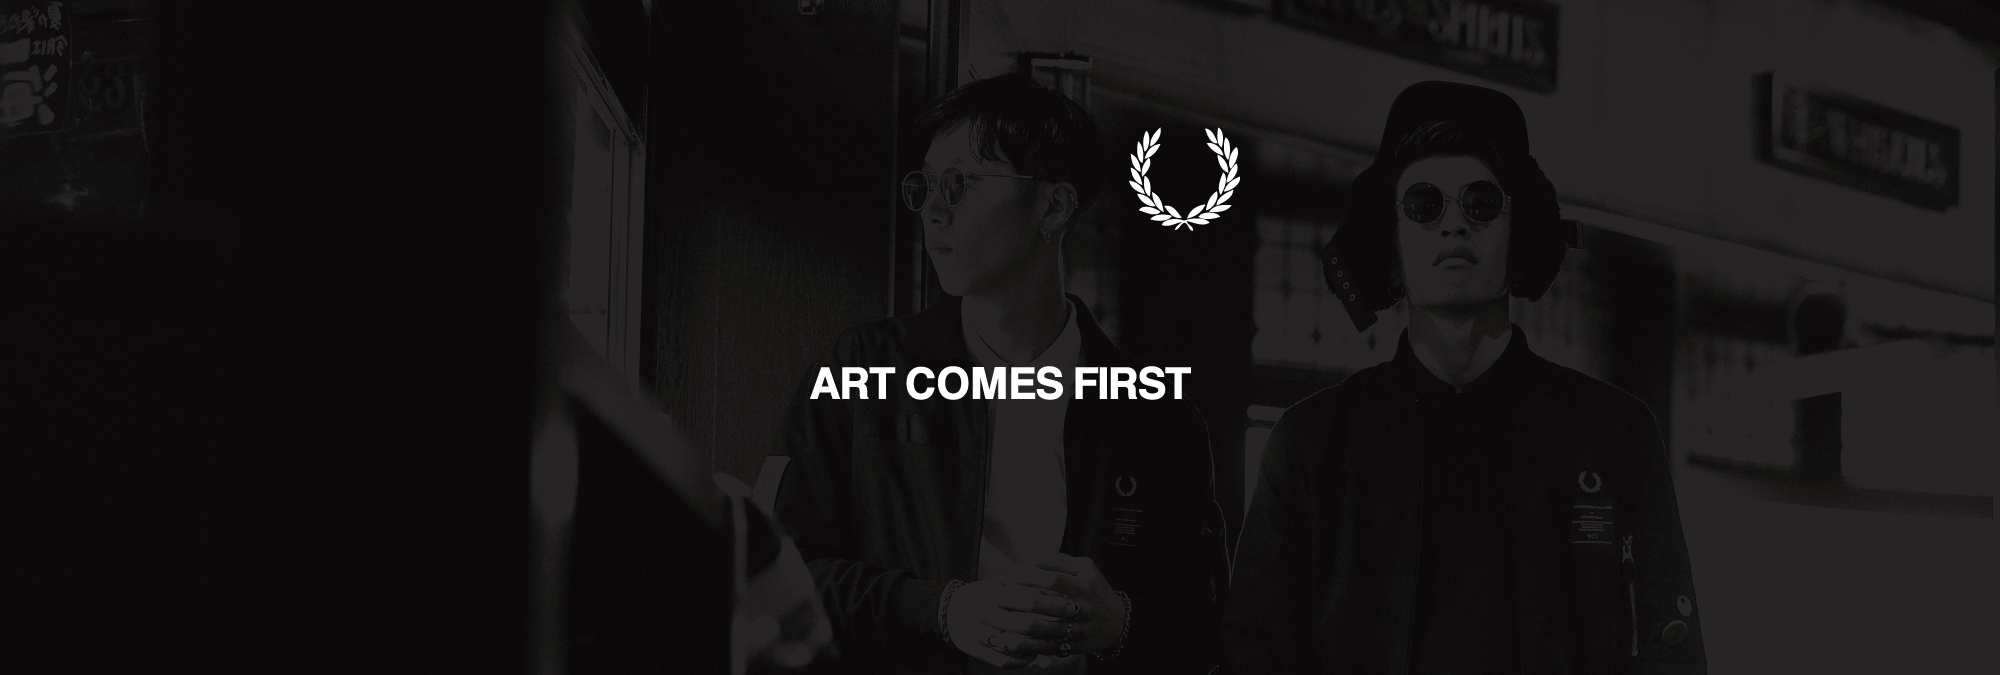 ART COMES FIRST x FRED PERRY